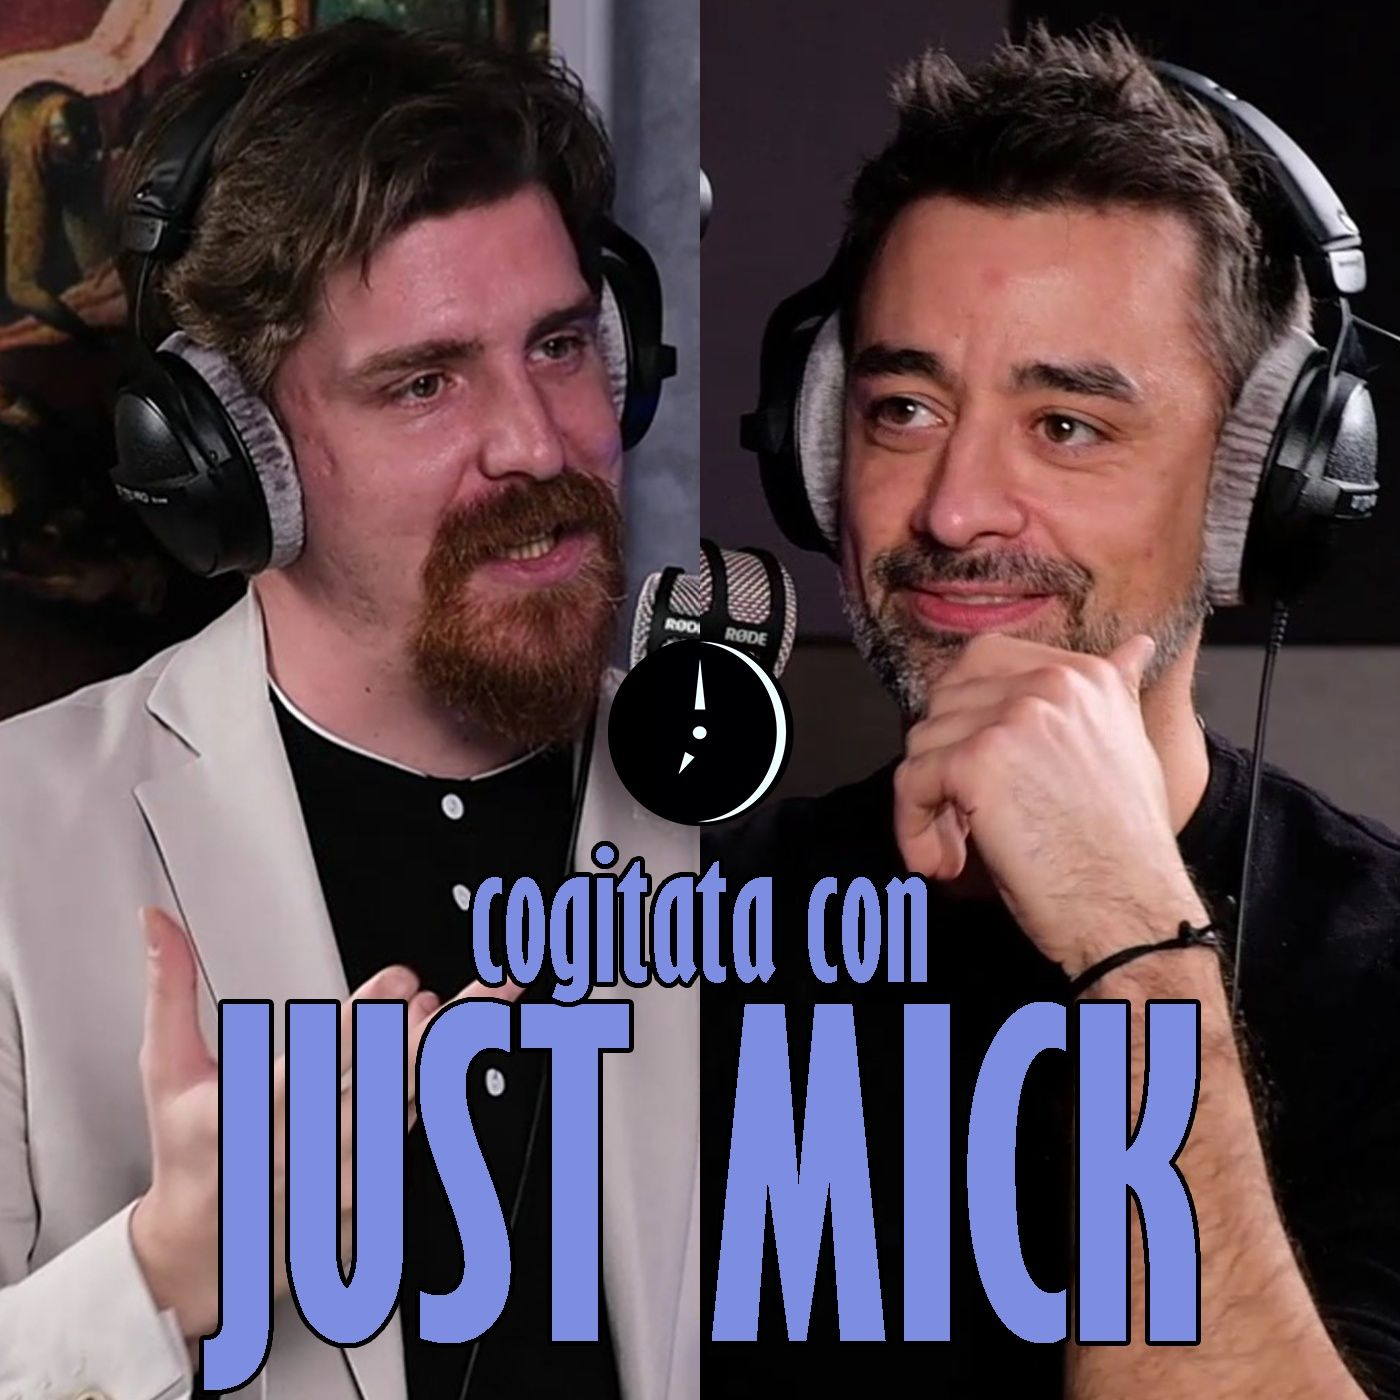 Cogitata con JUST MICK, divulgatore